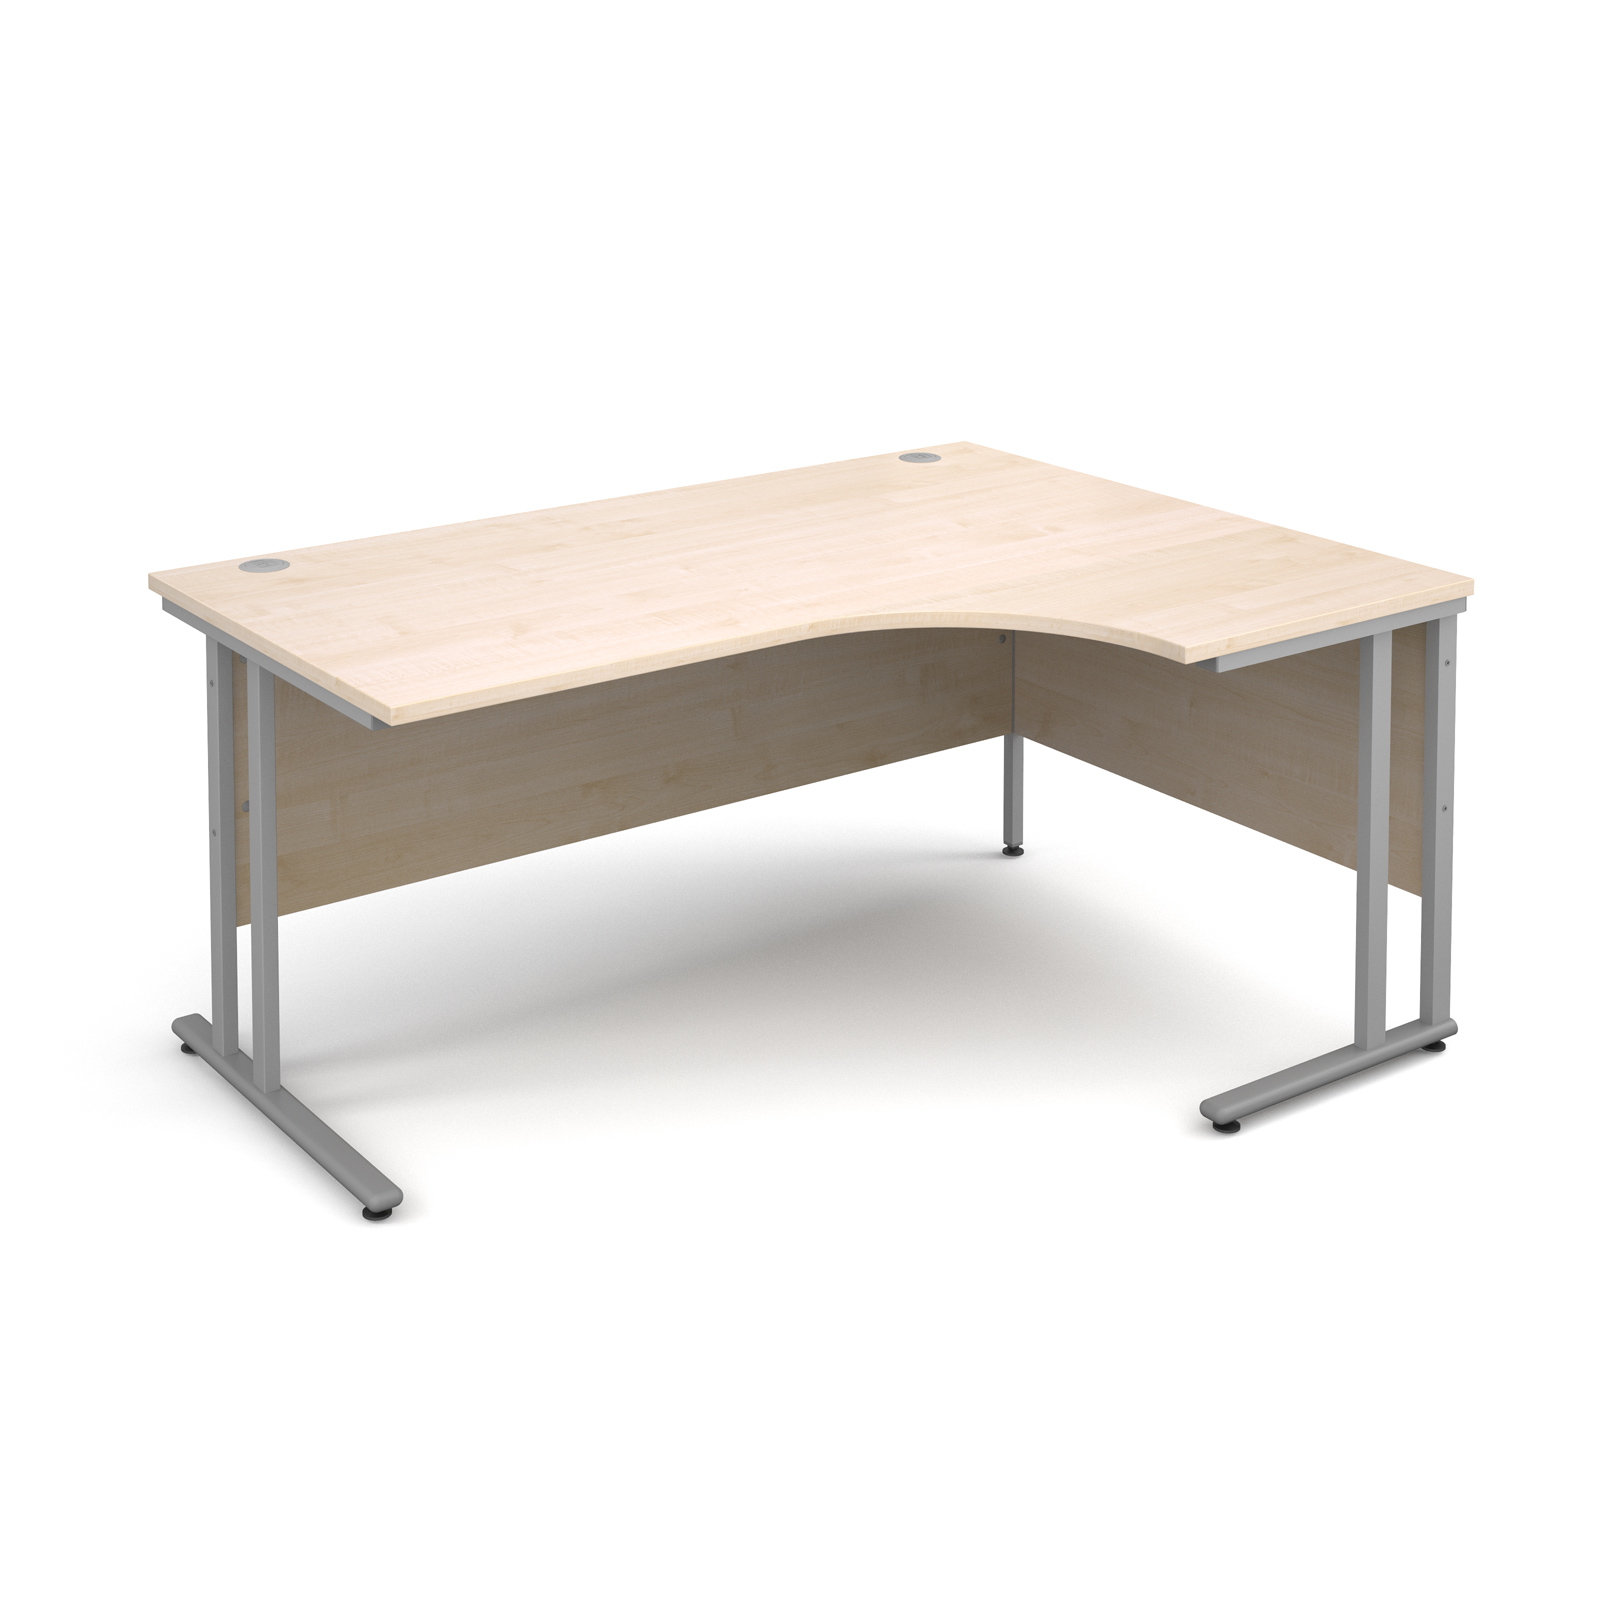 Maestro 25 SL right hand ergonomic desk 1600mm - silver cantilever frame, maple top